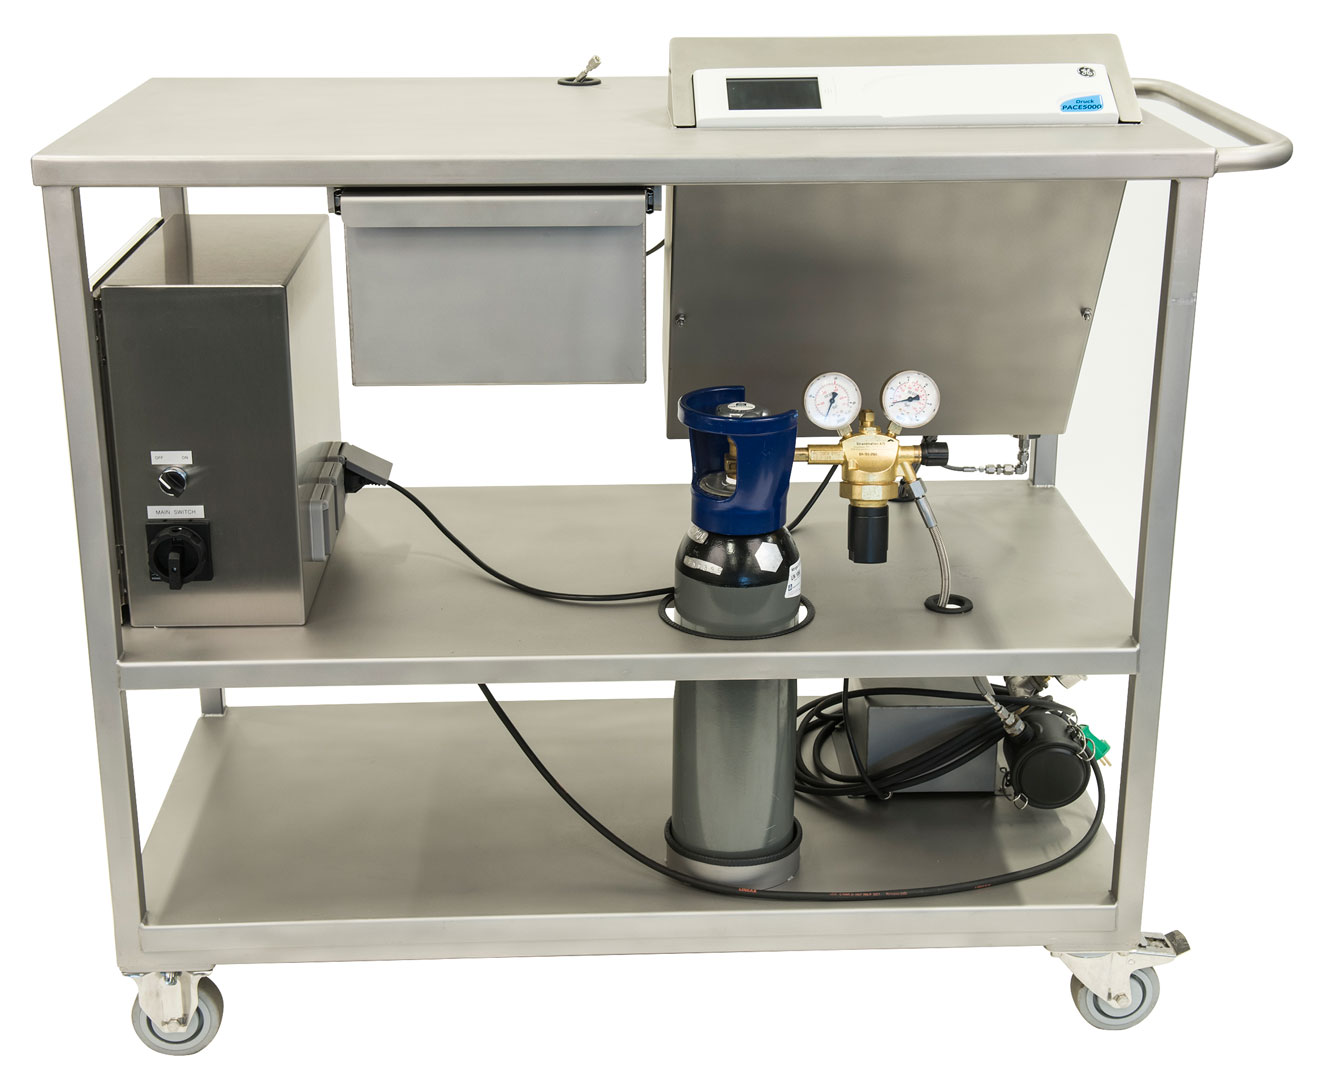 Precision Test Instruments for Calibration and Measurement